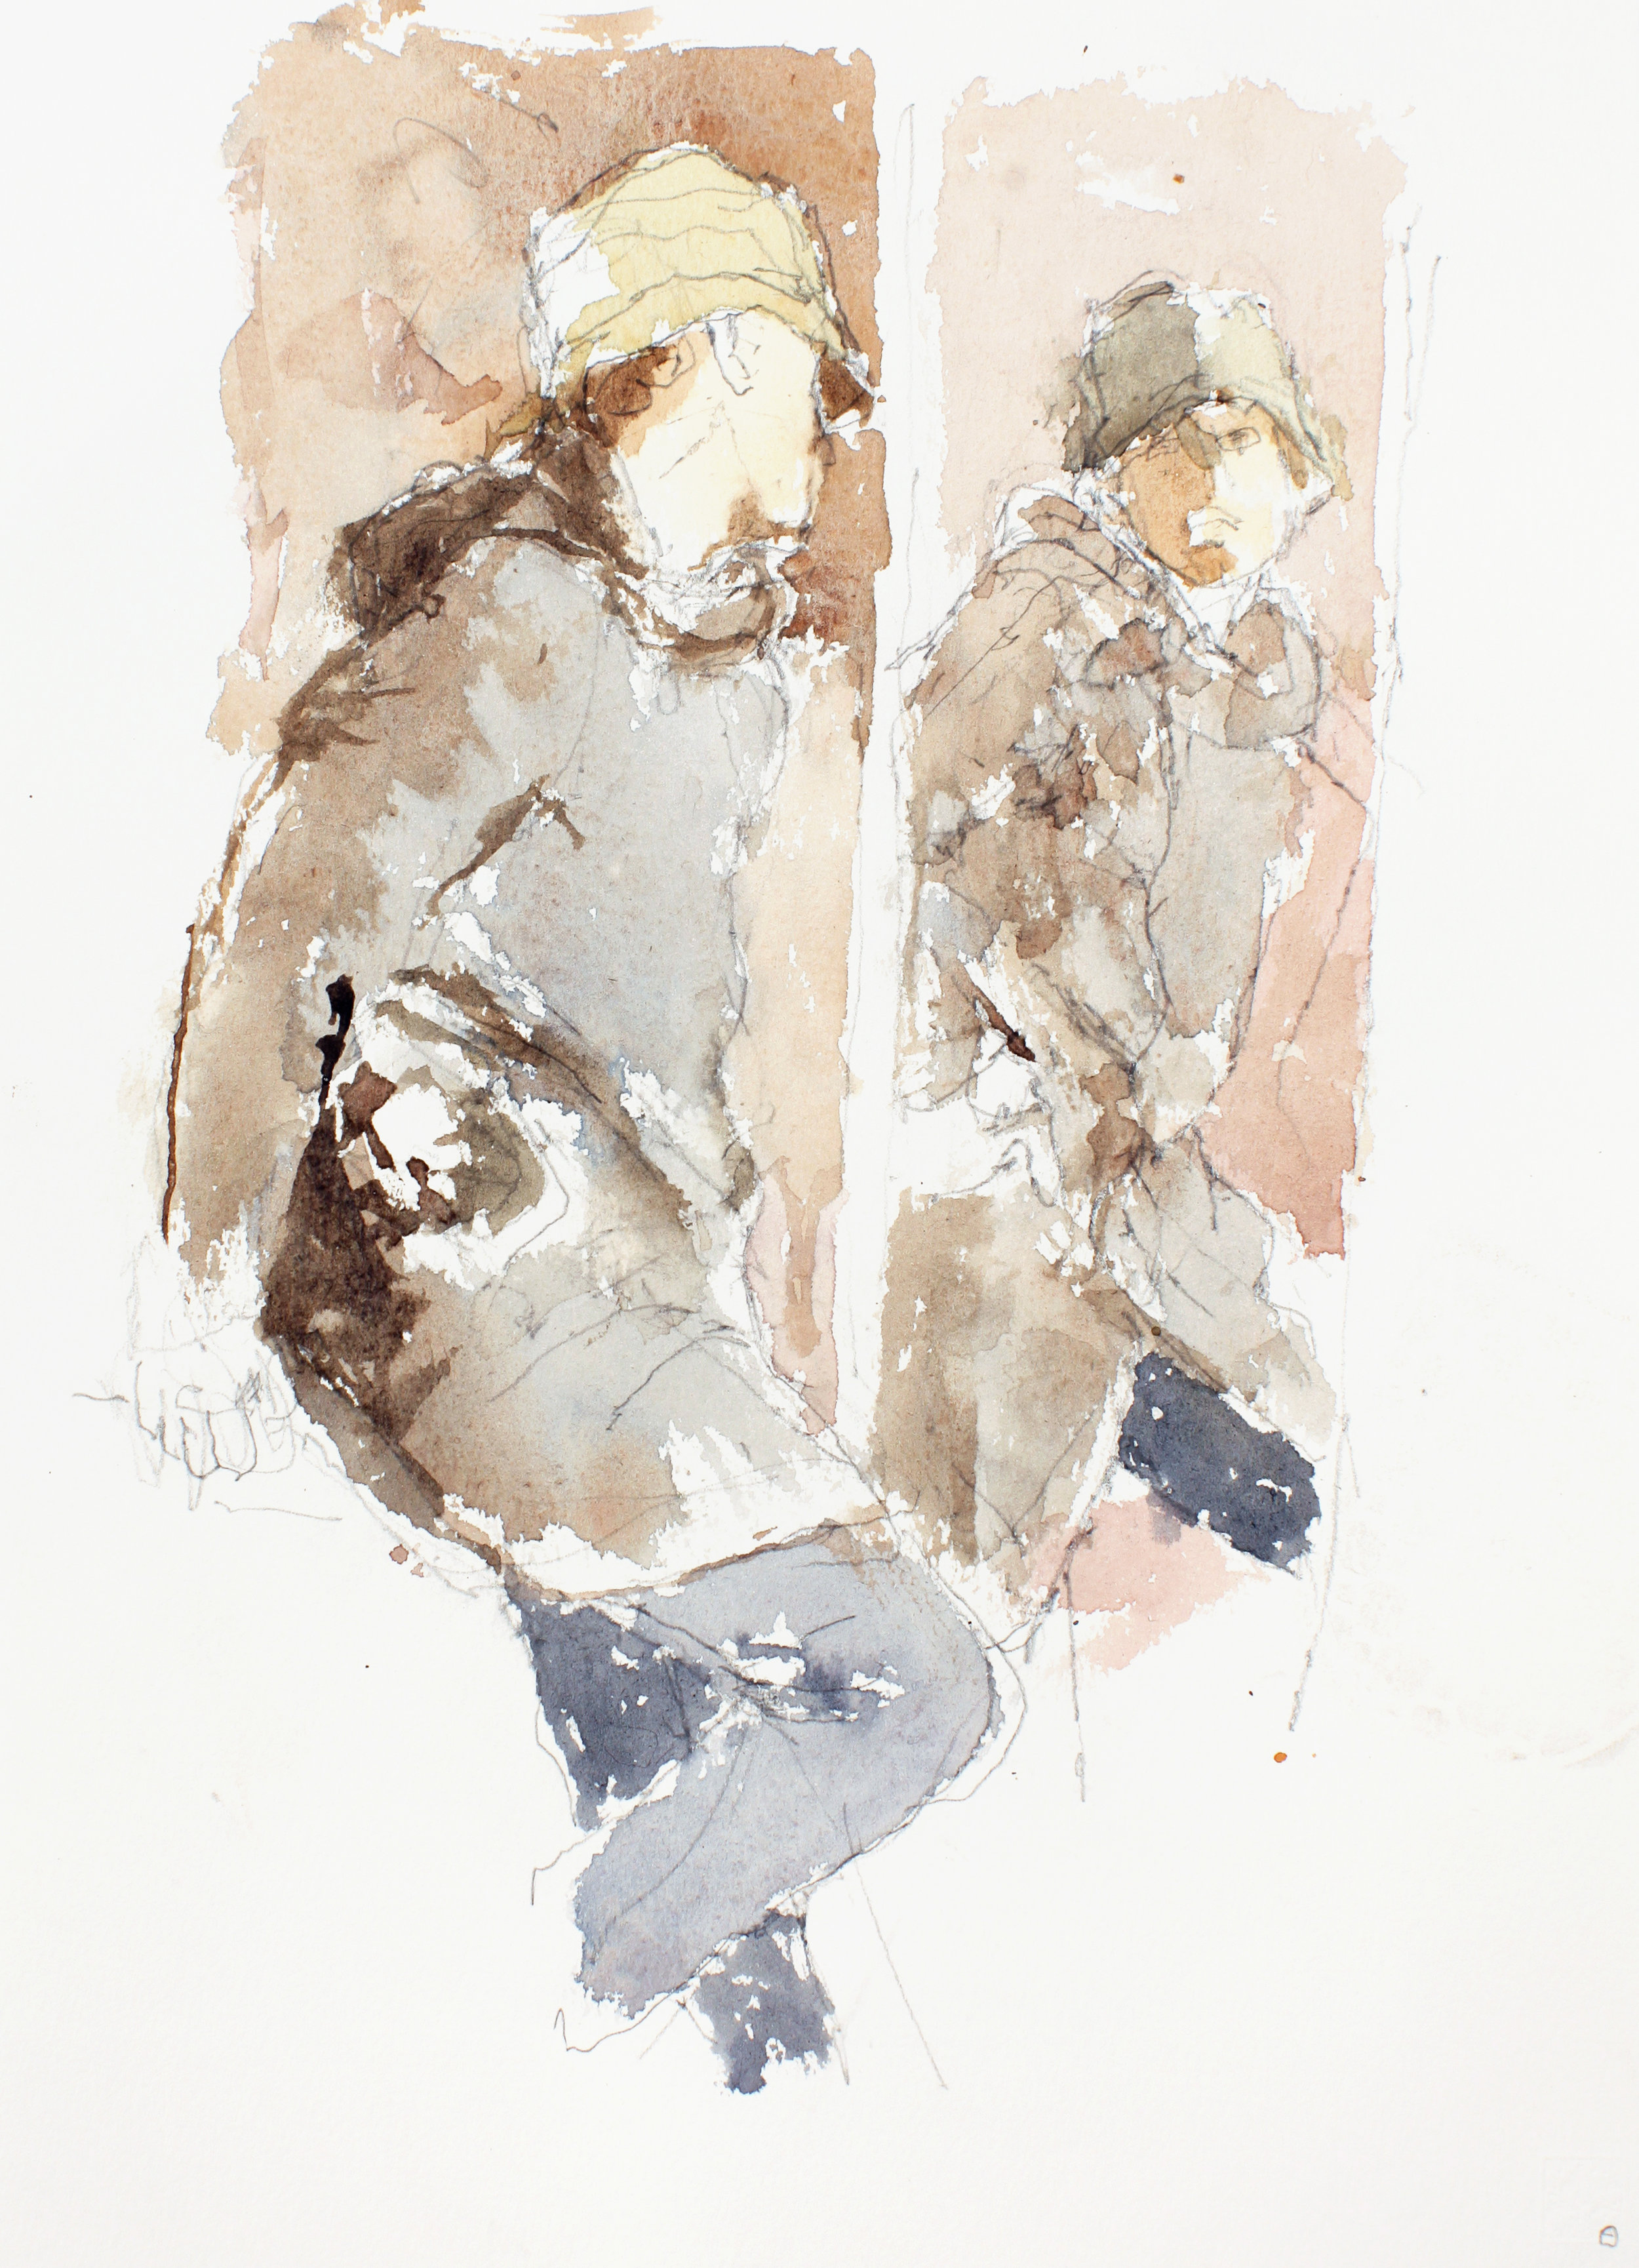 2007_Figure_with_Reflection_watercolour_and_pencil_on_paper_15x11in_WPF126.jpg